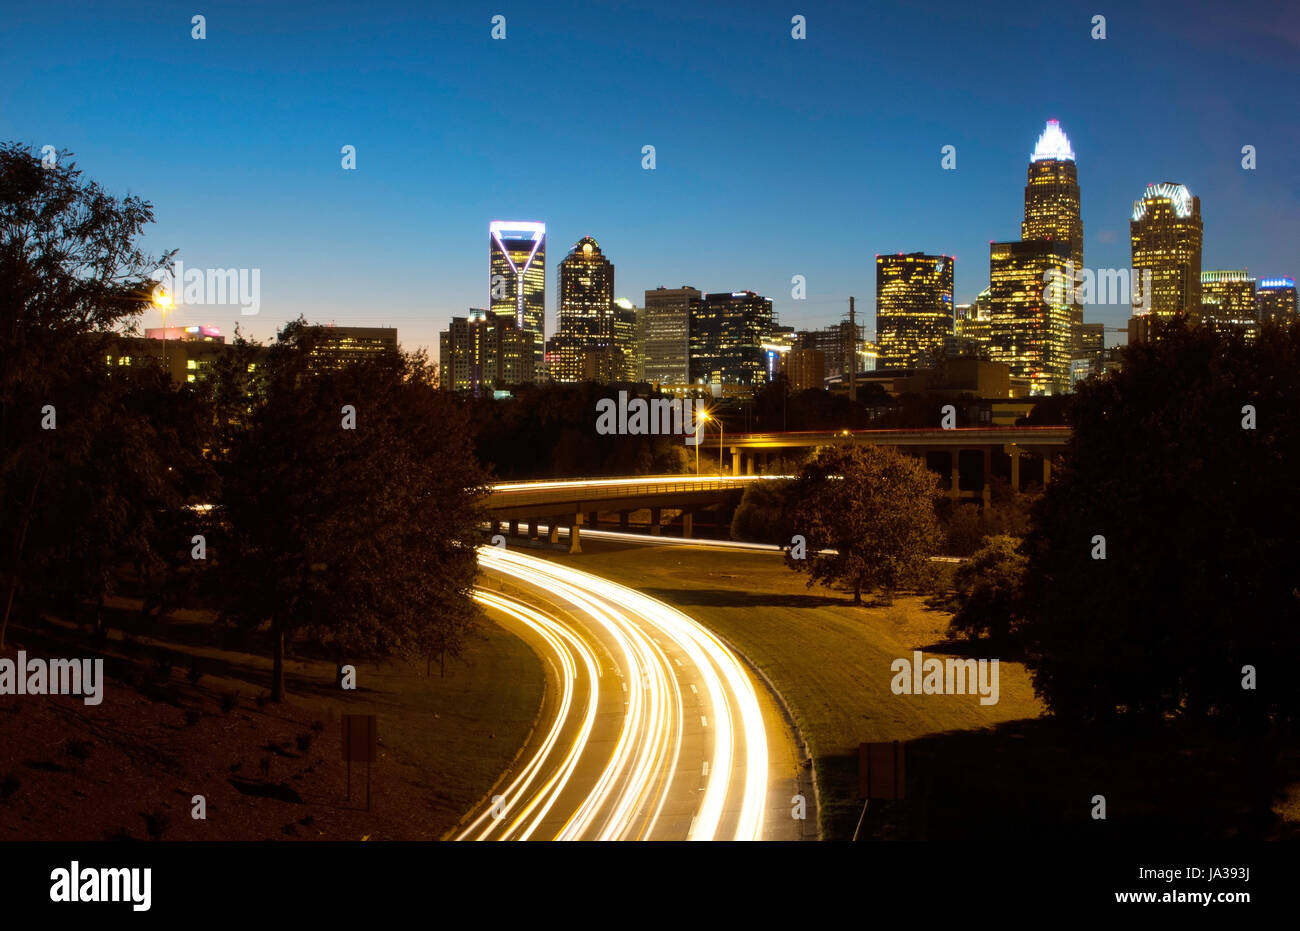 Charlotte North Carolina skyline at night avec circulation brouille et crépuscule Banque D'Images